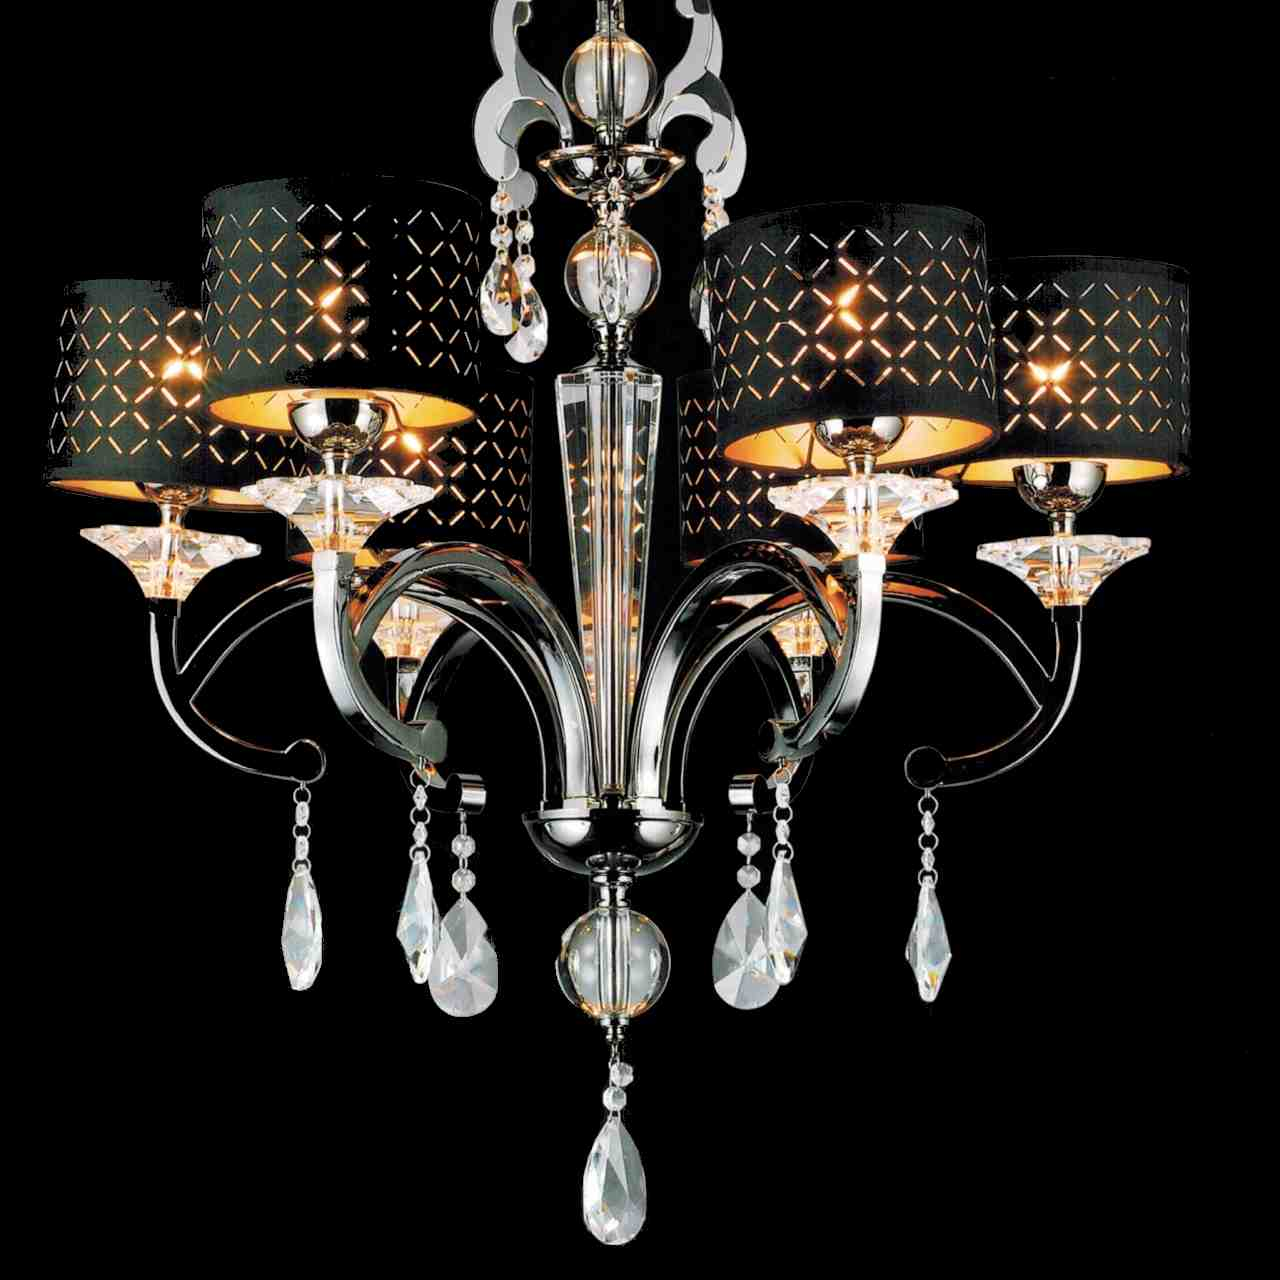 "brizzo lighting stores. "" bello nero contemporary crystal round, Lighting ideas"